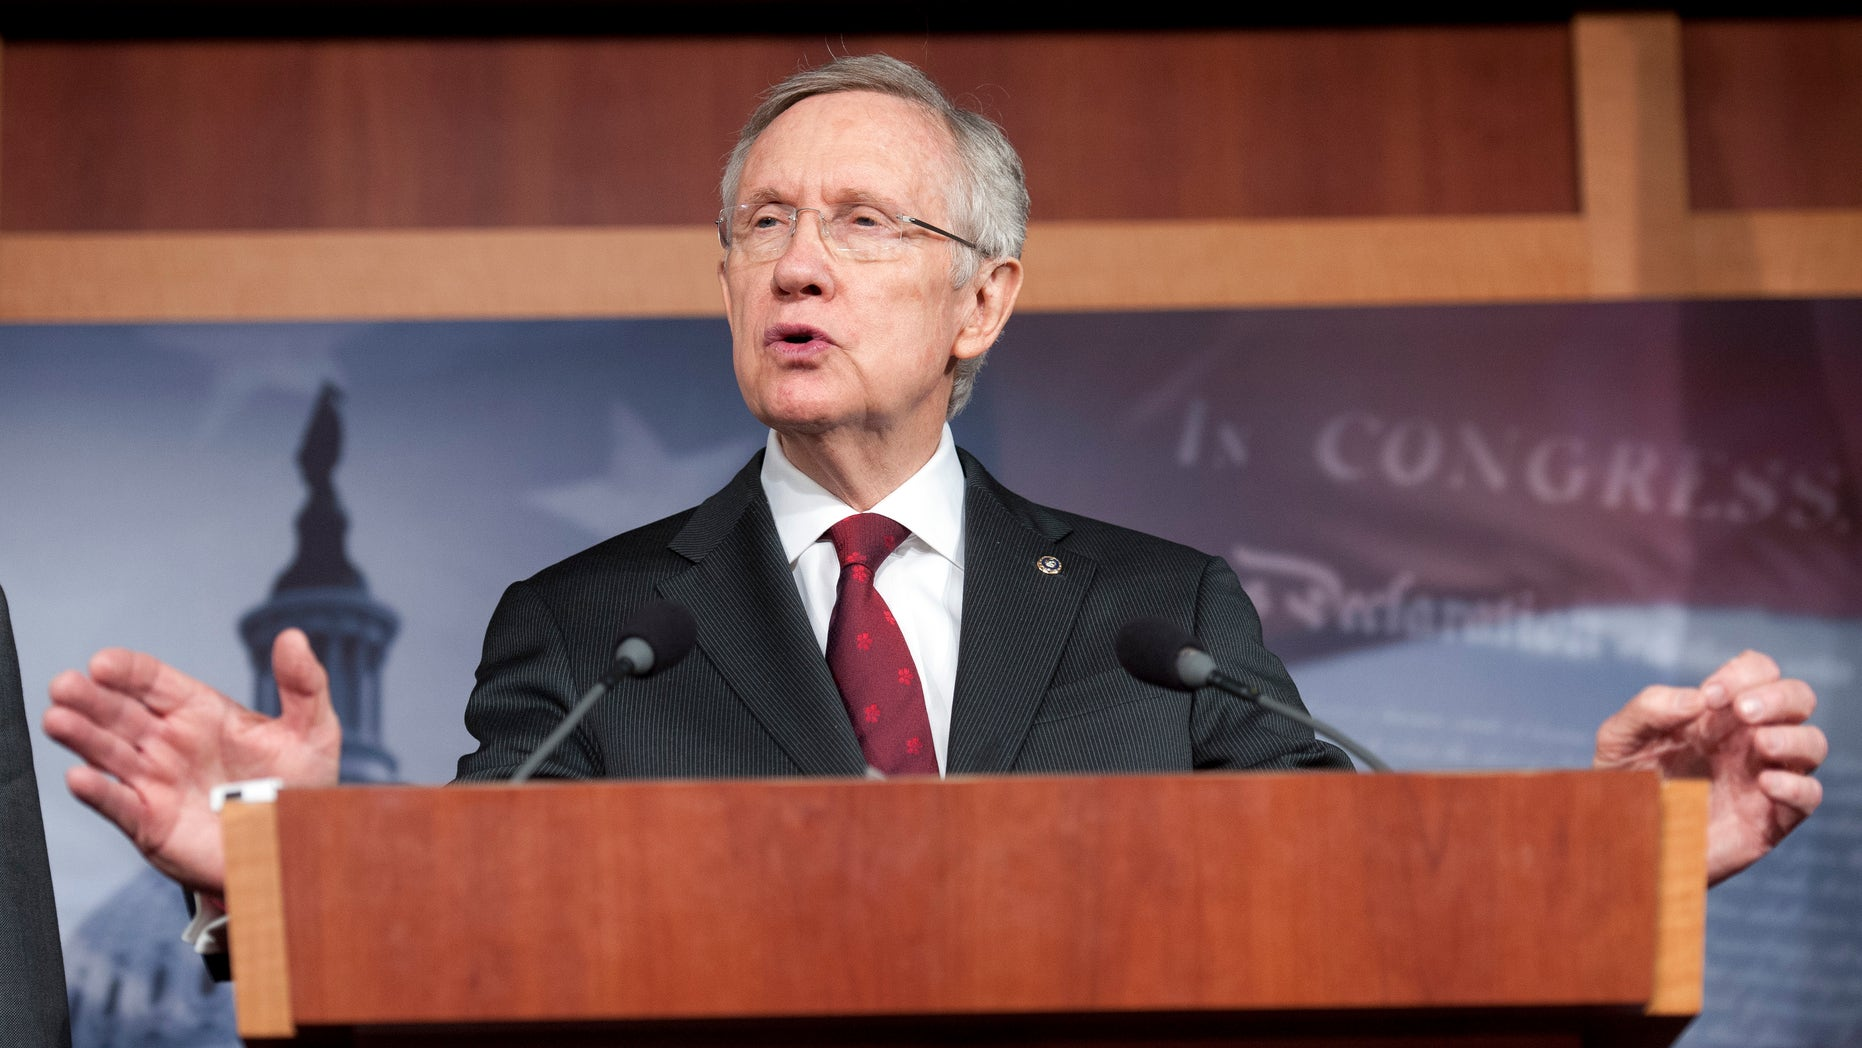 Senate Majority Leader Harry Reid, D-Nev., speaks with reporters about the federal budget on Capitol Hill in Washington, Thursday, March 14, 2013. (AP Photo/Cliff Owen)